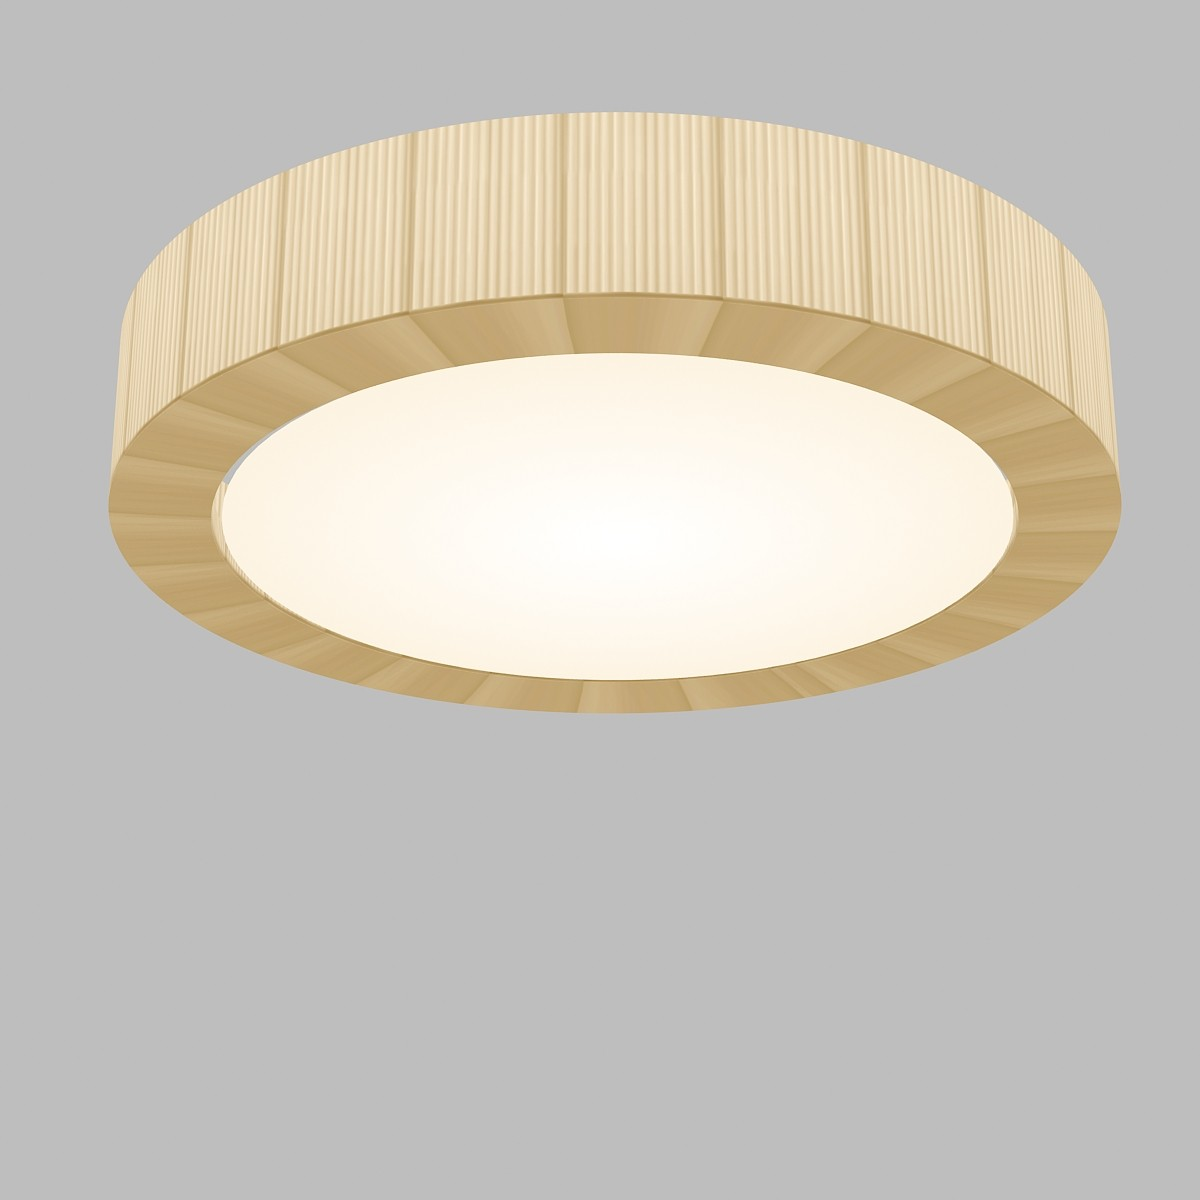 Urban - 120 ceiling lamp 2G11 36w Chrome-Cinta translucent Cream